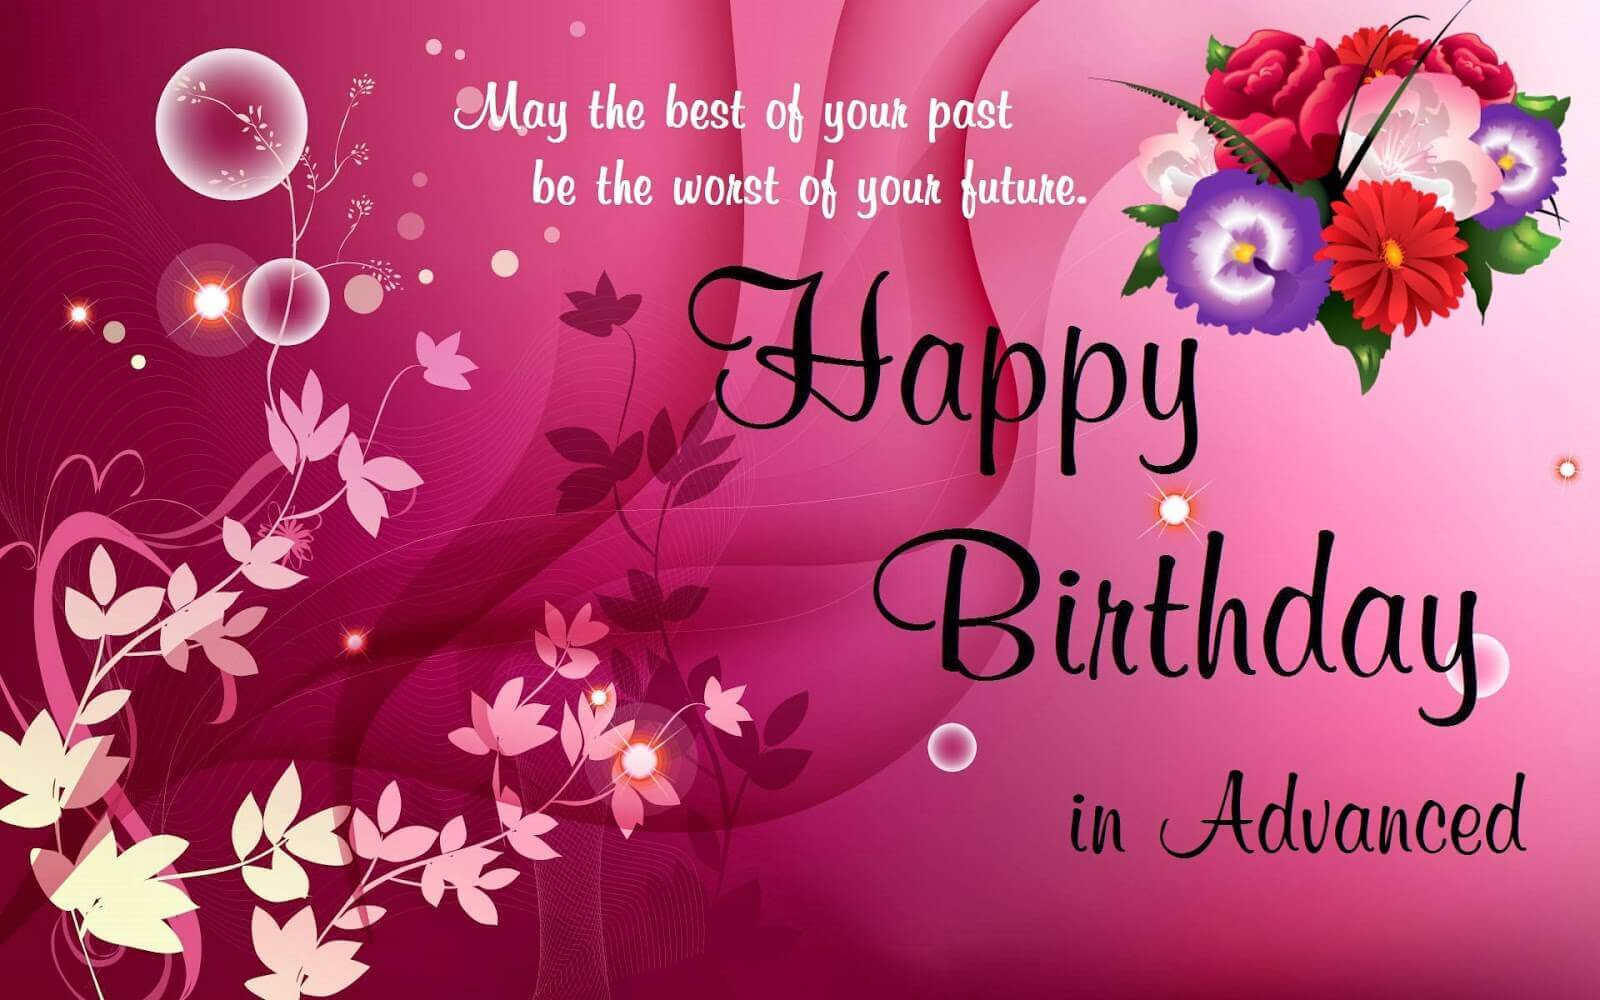 Happy birthday greetings for facebook birthday greetings for facebook happy birthday greetings kristyandbryce Choice Image